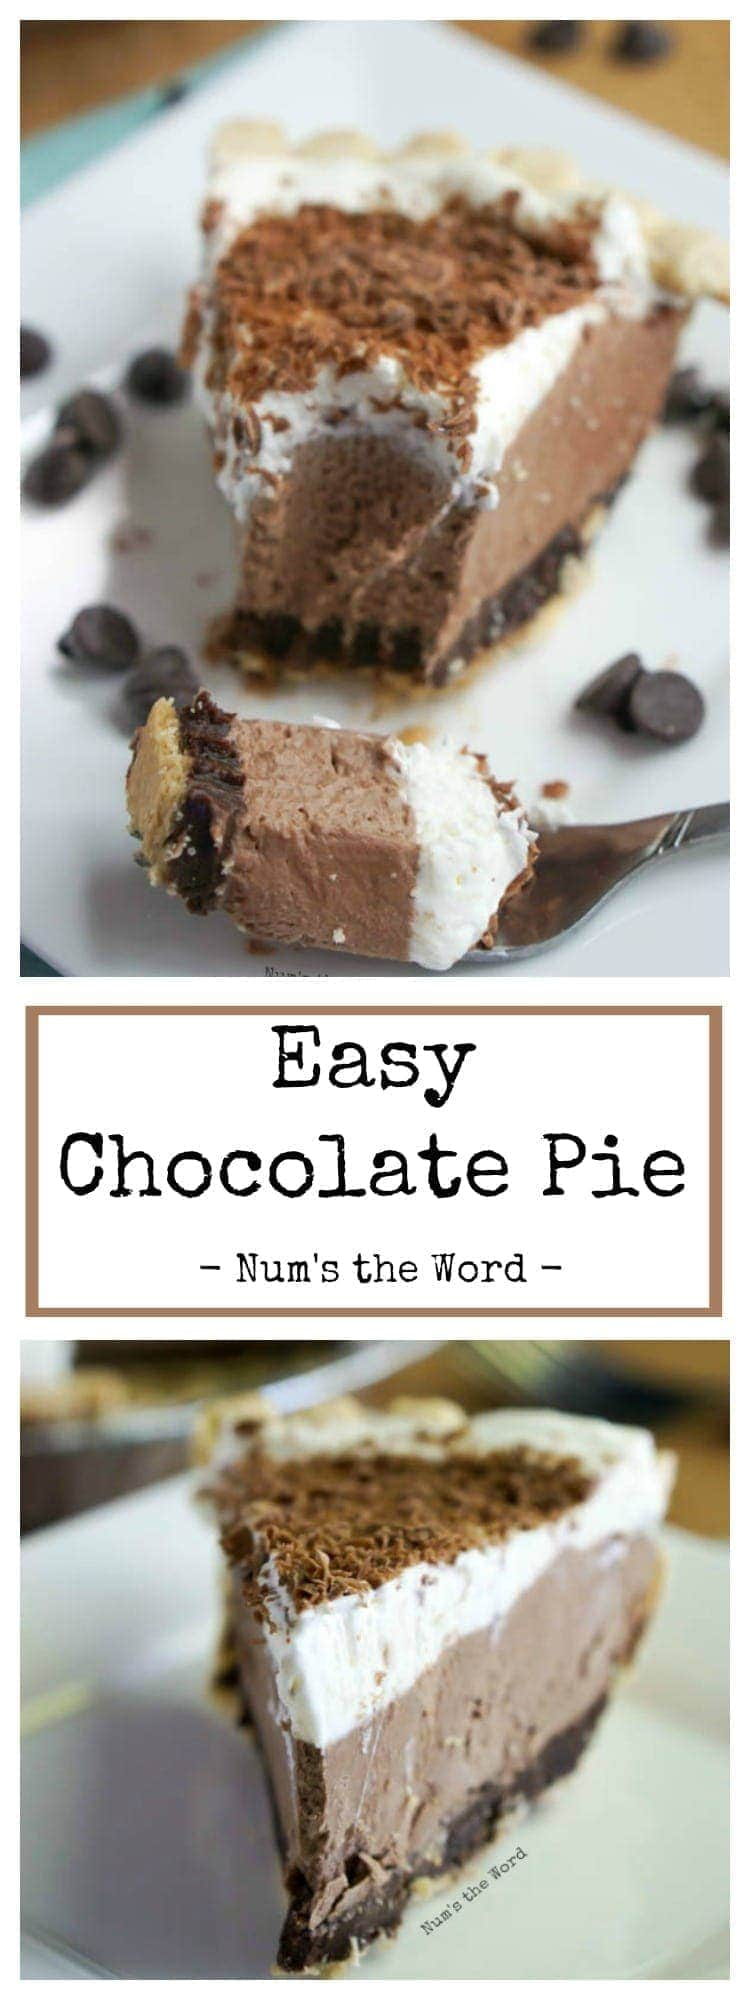 pics How to Bake an Impossible Chocolate Pie